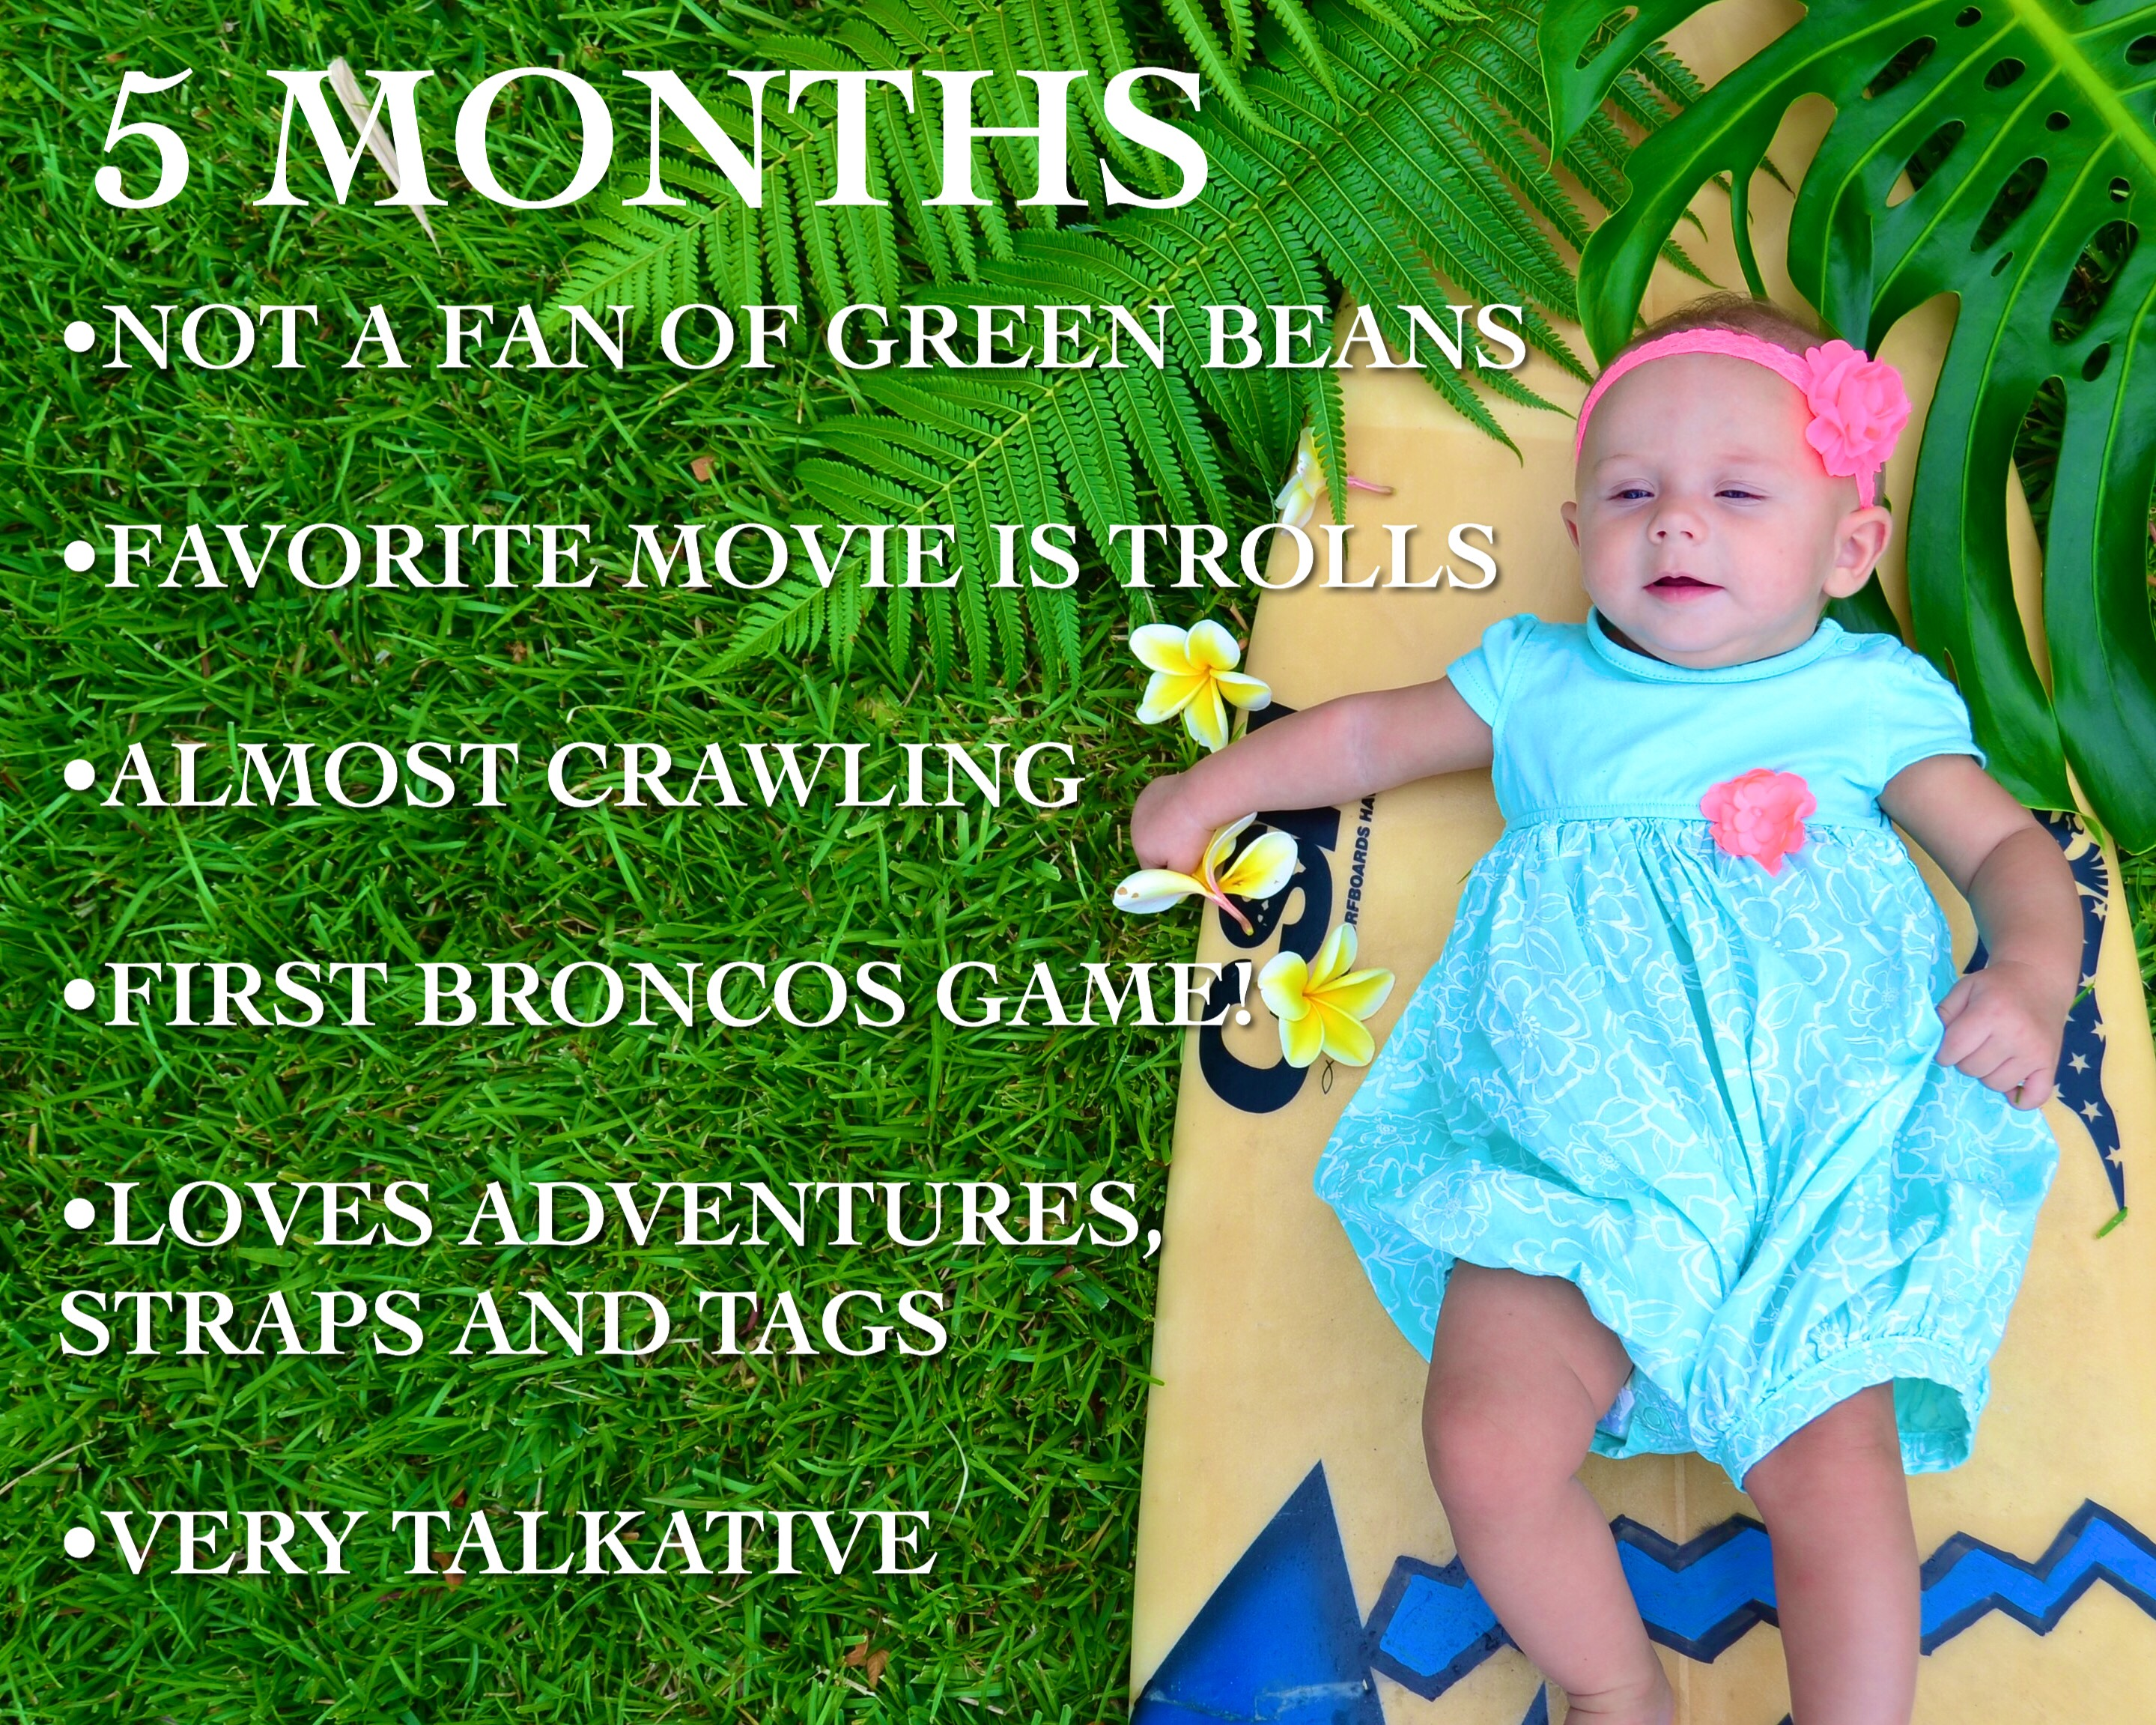 db5cbf5f3 Baby Milestones: 5 Months Old | Pacifier Happy Hour